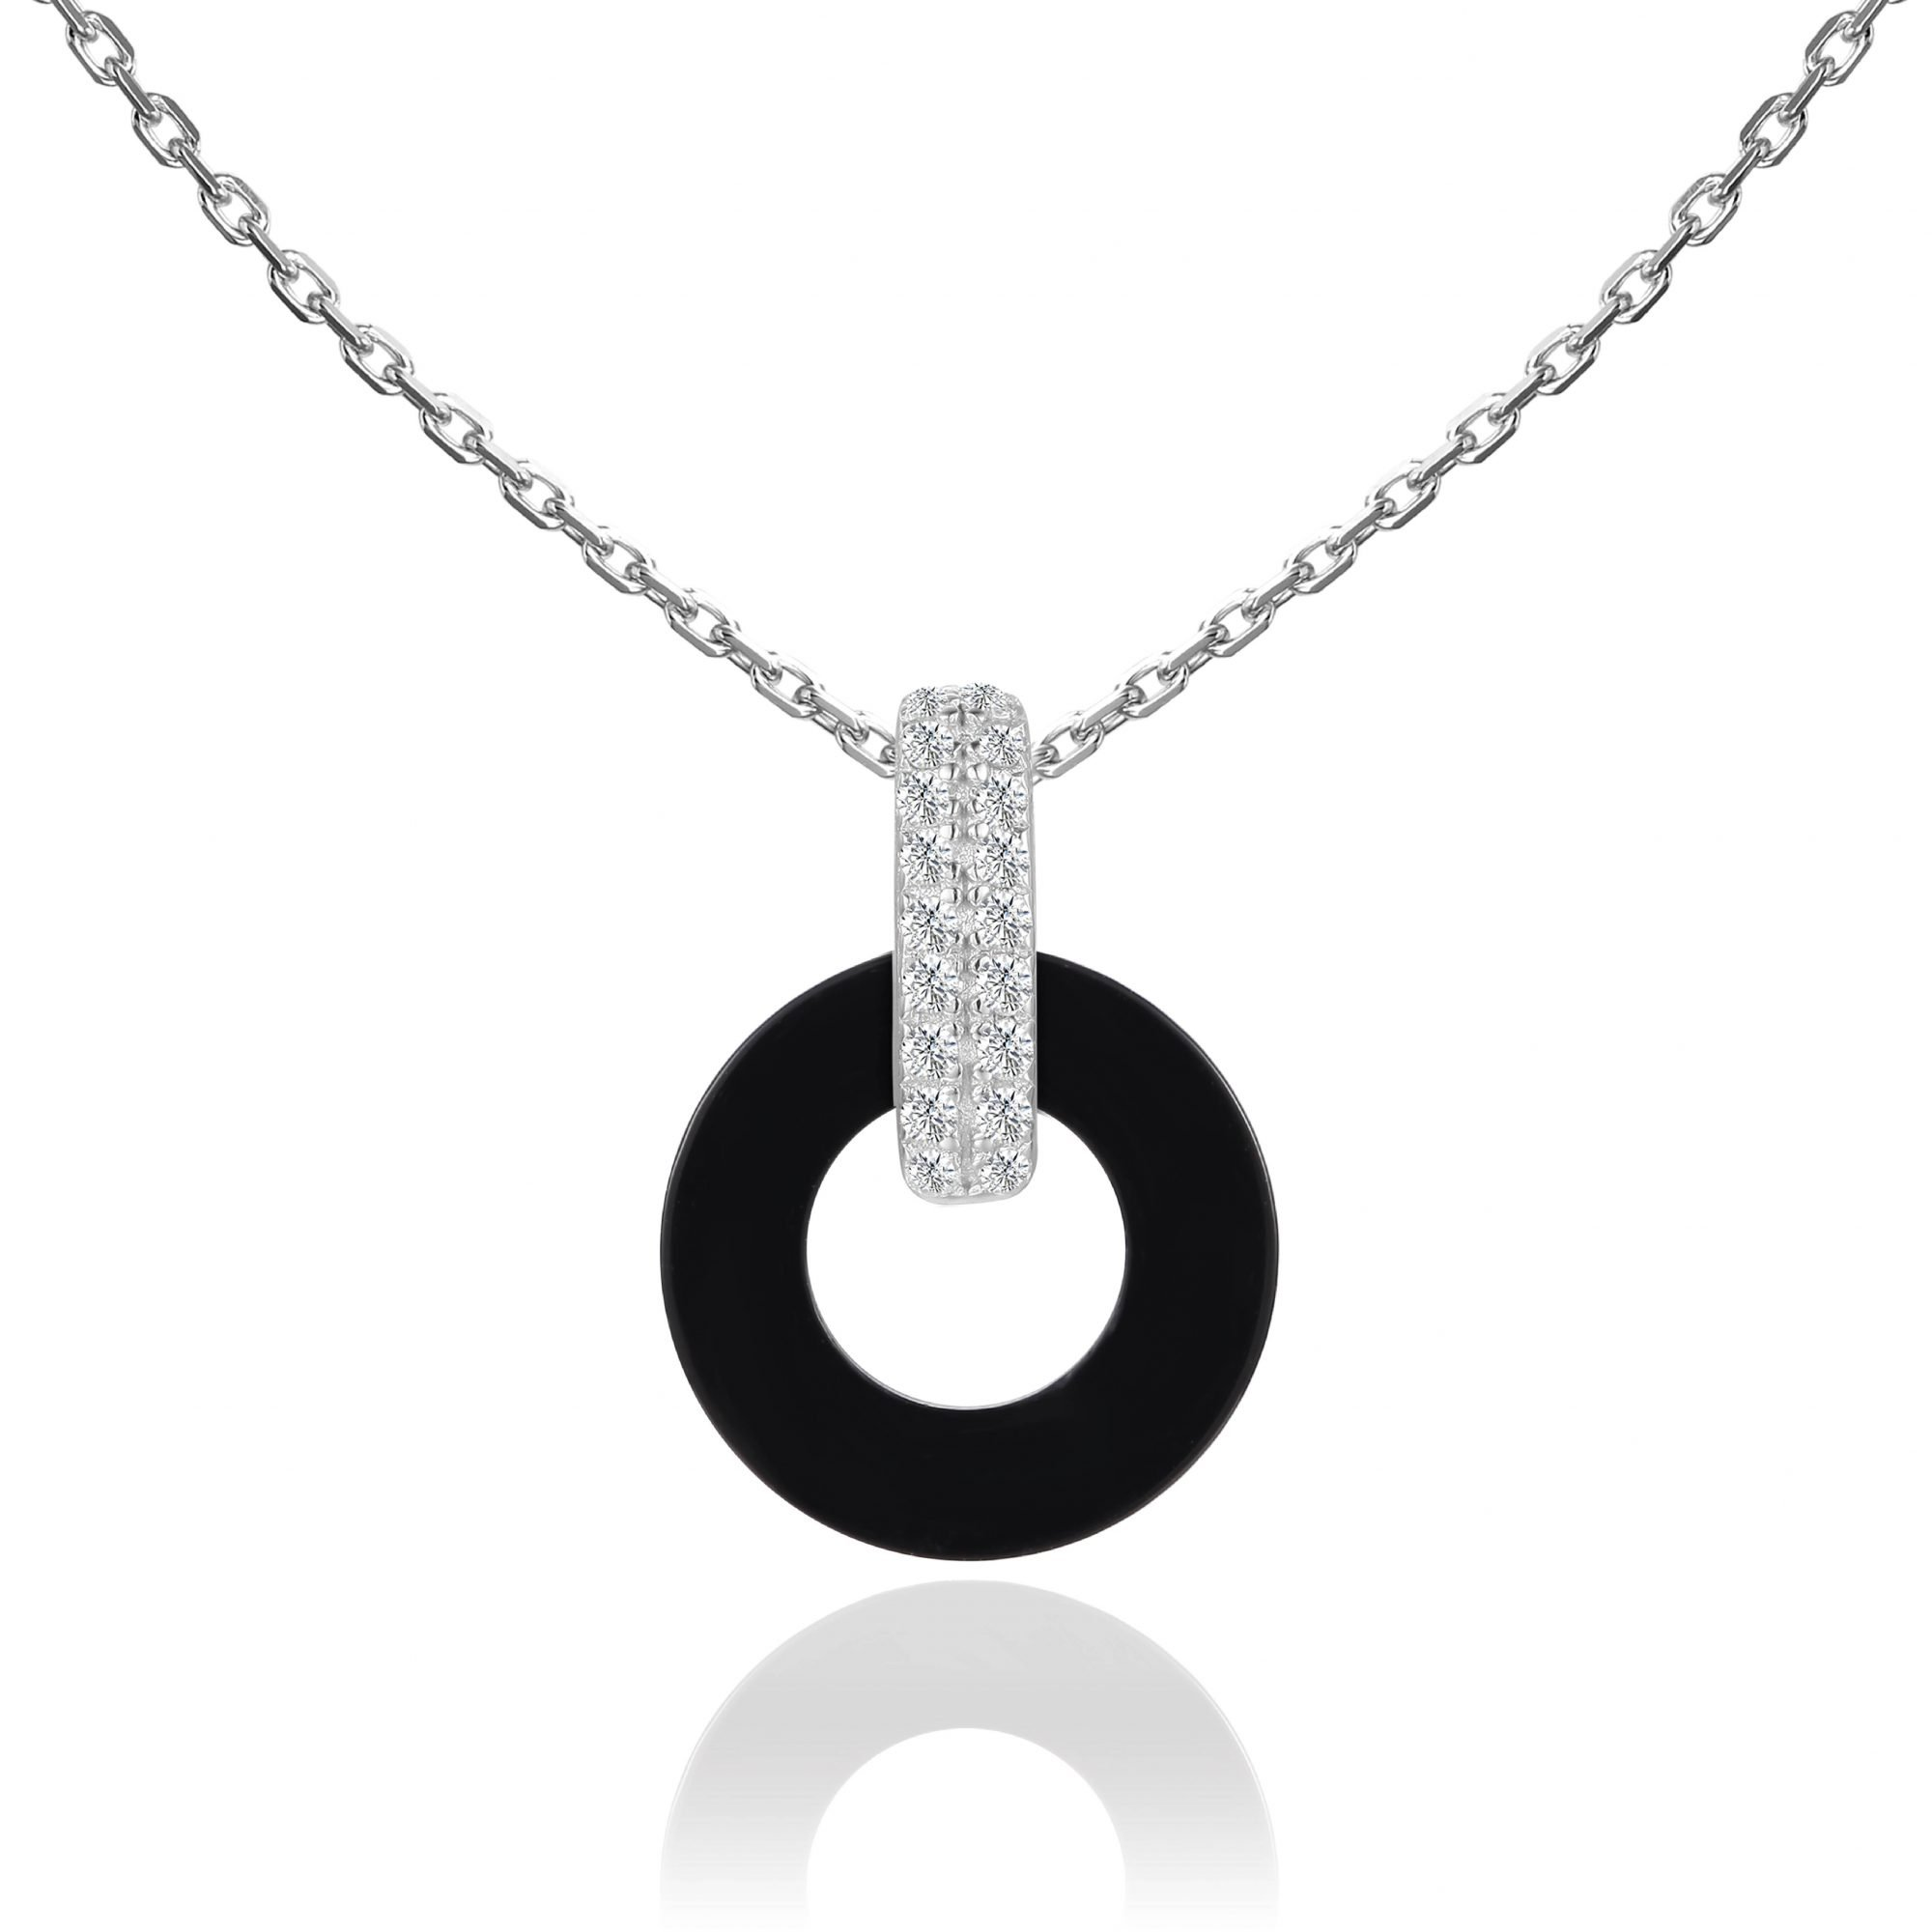 """VIKTOR ALEXANDER 925 SILVER PENDANT JEWELLERY WHITE SAPPHIRE GEMSTONE WITH 18"""" 925 SILVER CHAIN CONNECTOR BLACK AGATE CHARM"""